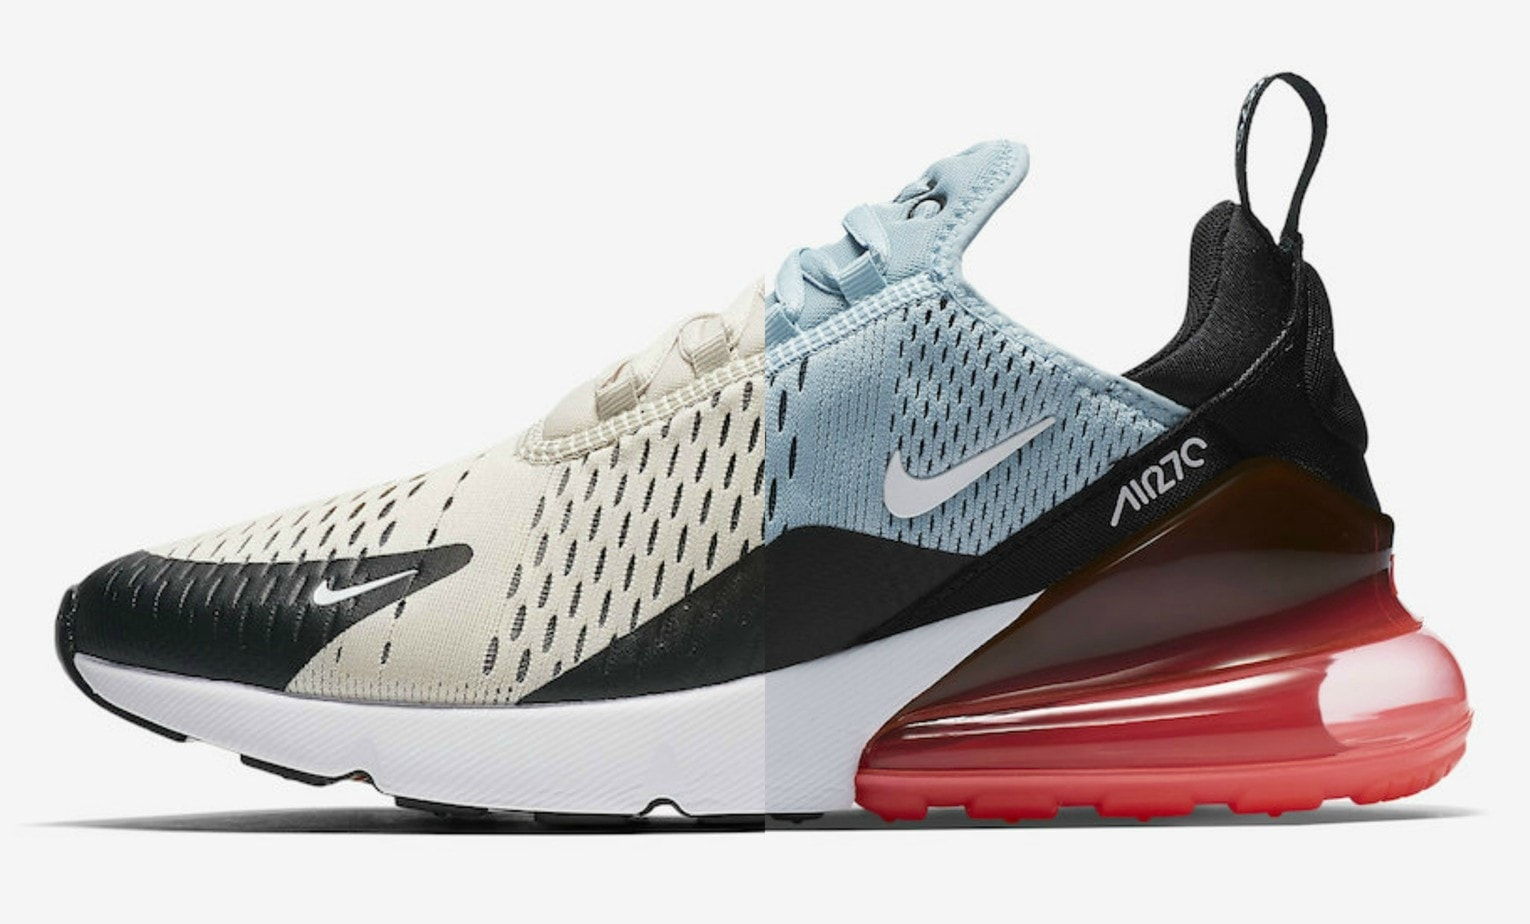 outlet store b0b7a 57fb9 The new Nike Air Max 270 has already been seen in an enormous berth of  colorways. Now, the model will be releasing soon in Light Bone and Ocean  Bliss.